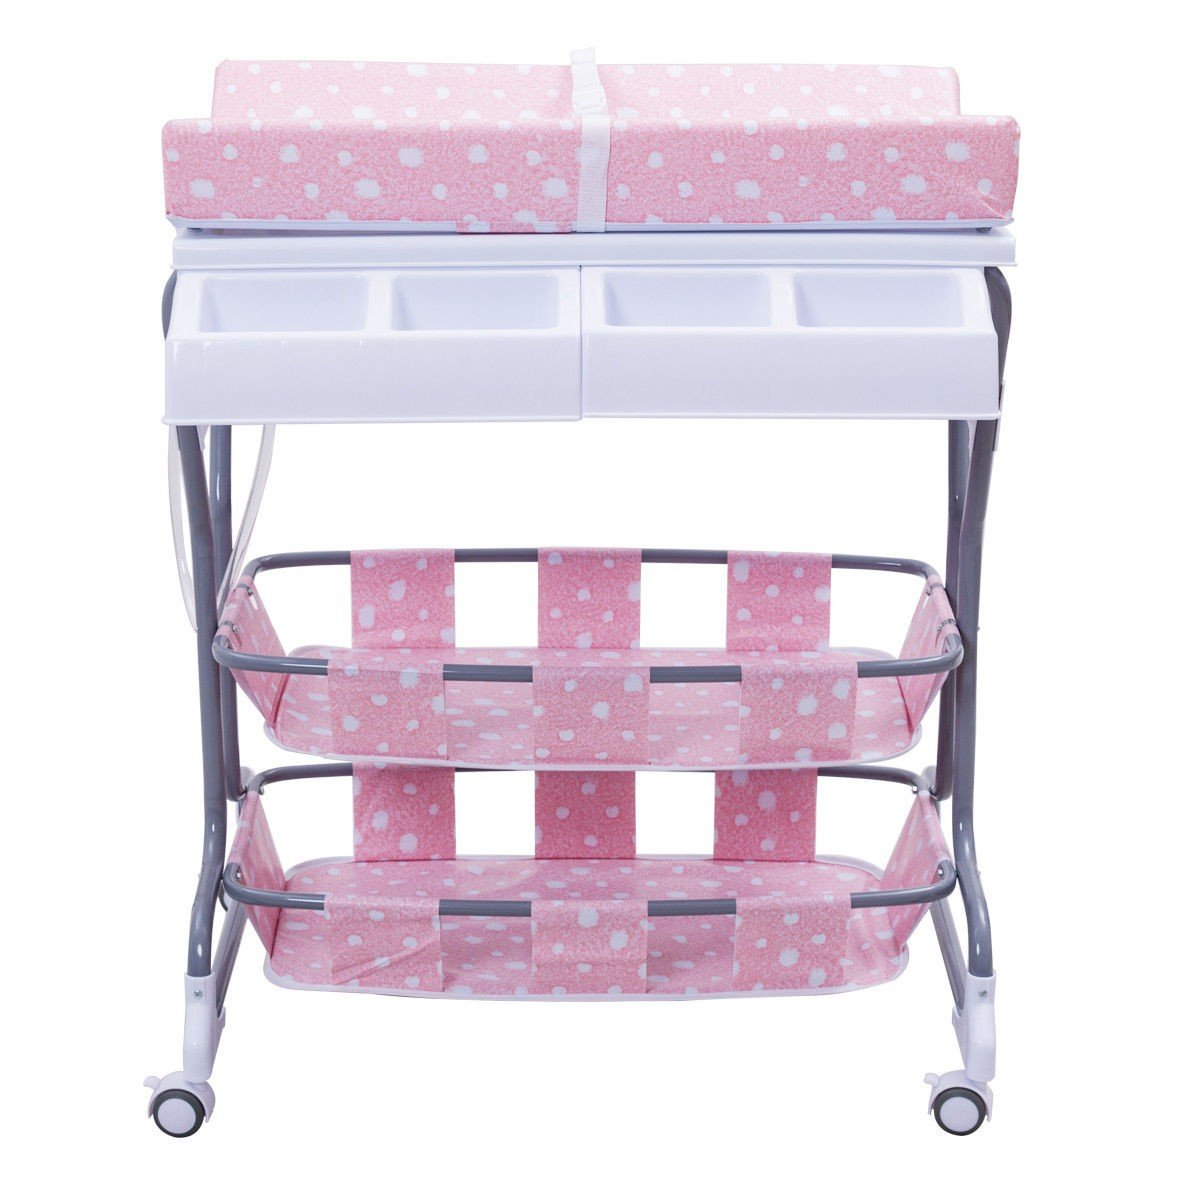 MD Group Baby Changing Table Pink Foam & Steel Frame 3-in-1 Pyramid Style Infant Nursery Storage